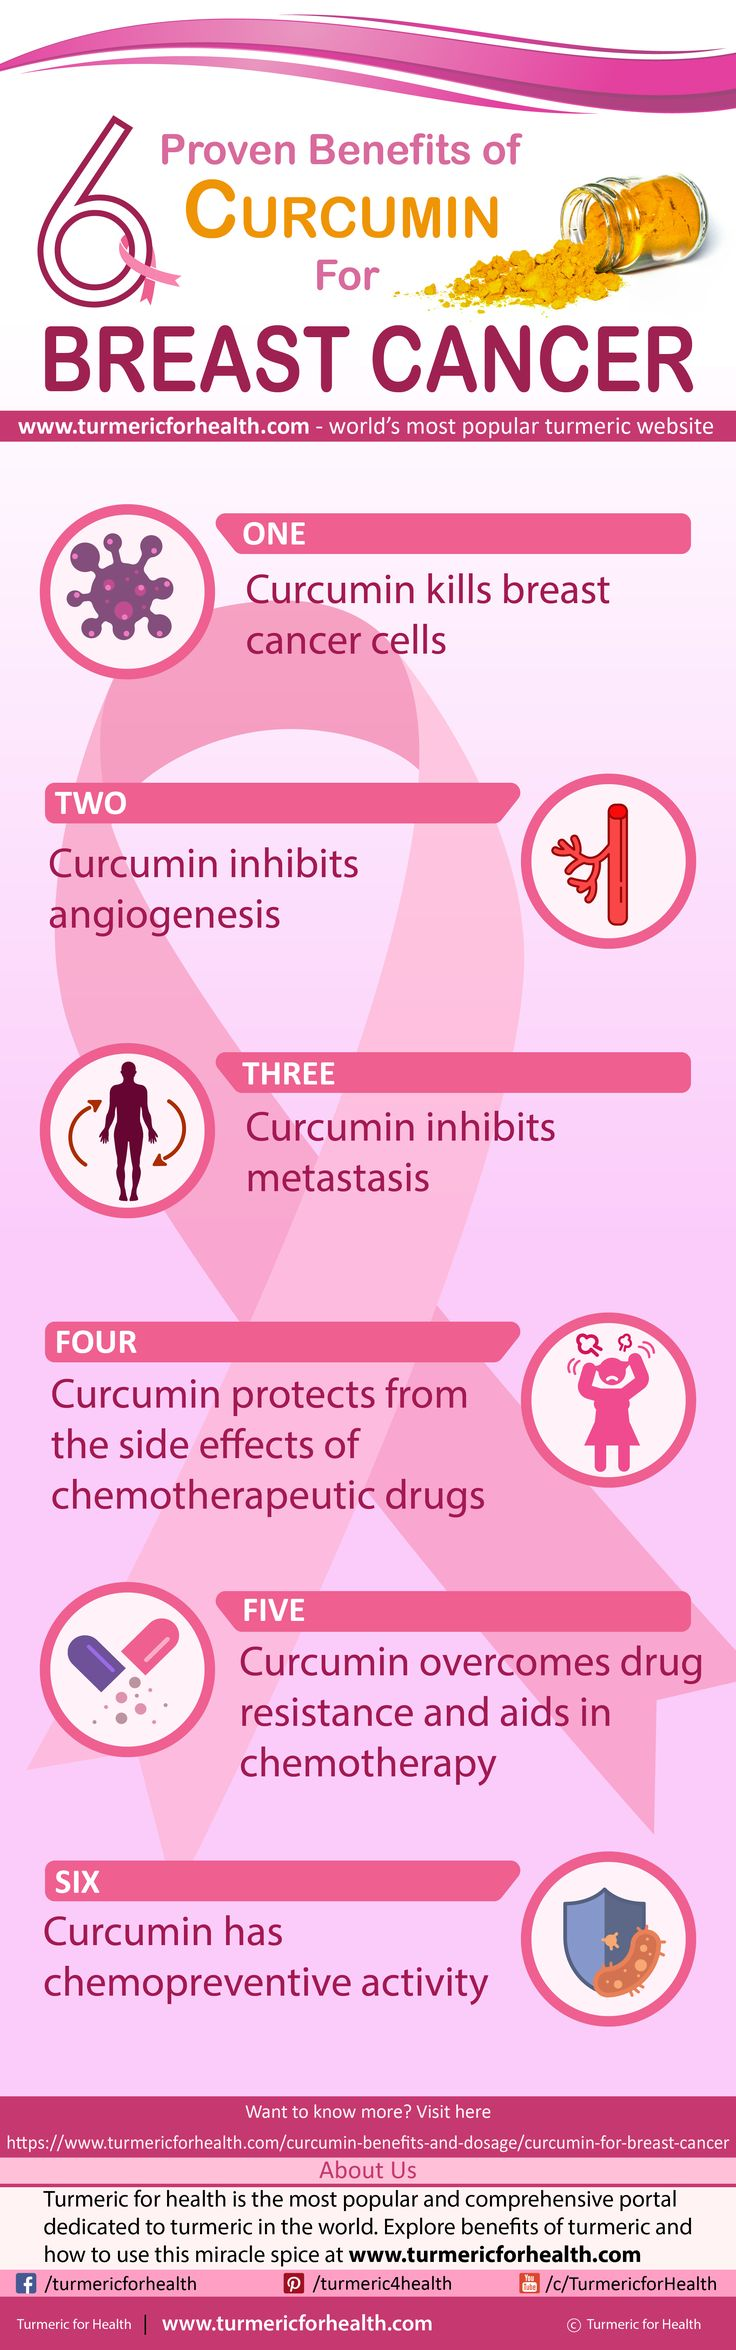 Curcumin can help in breast cancer in several ways. Curcumin kills the cancer cells, prevents the cancer proliferation and metastasis. Moreover, curcumin also helps in overcoming drug-resistance in the breast cancer cells and acts synergistically with the chemotherapeutic drugs to improve the treatment.It has protective action in the normal cells of the body against the side-effects of the chemotherapeutic drugs as well. #cancer #breastcancer #turmeric #curcumin